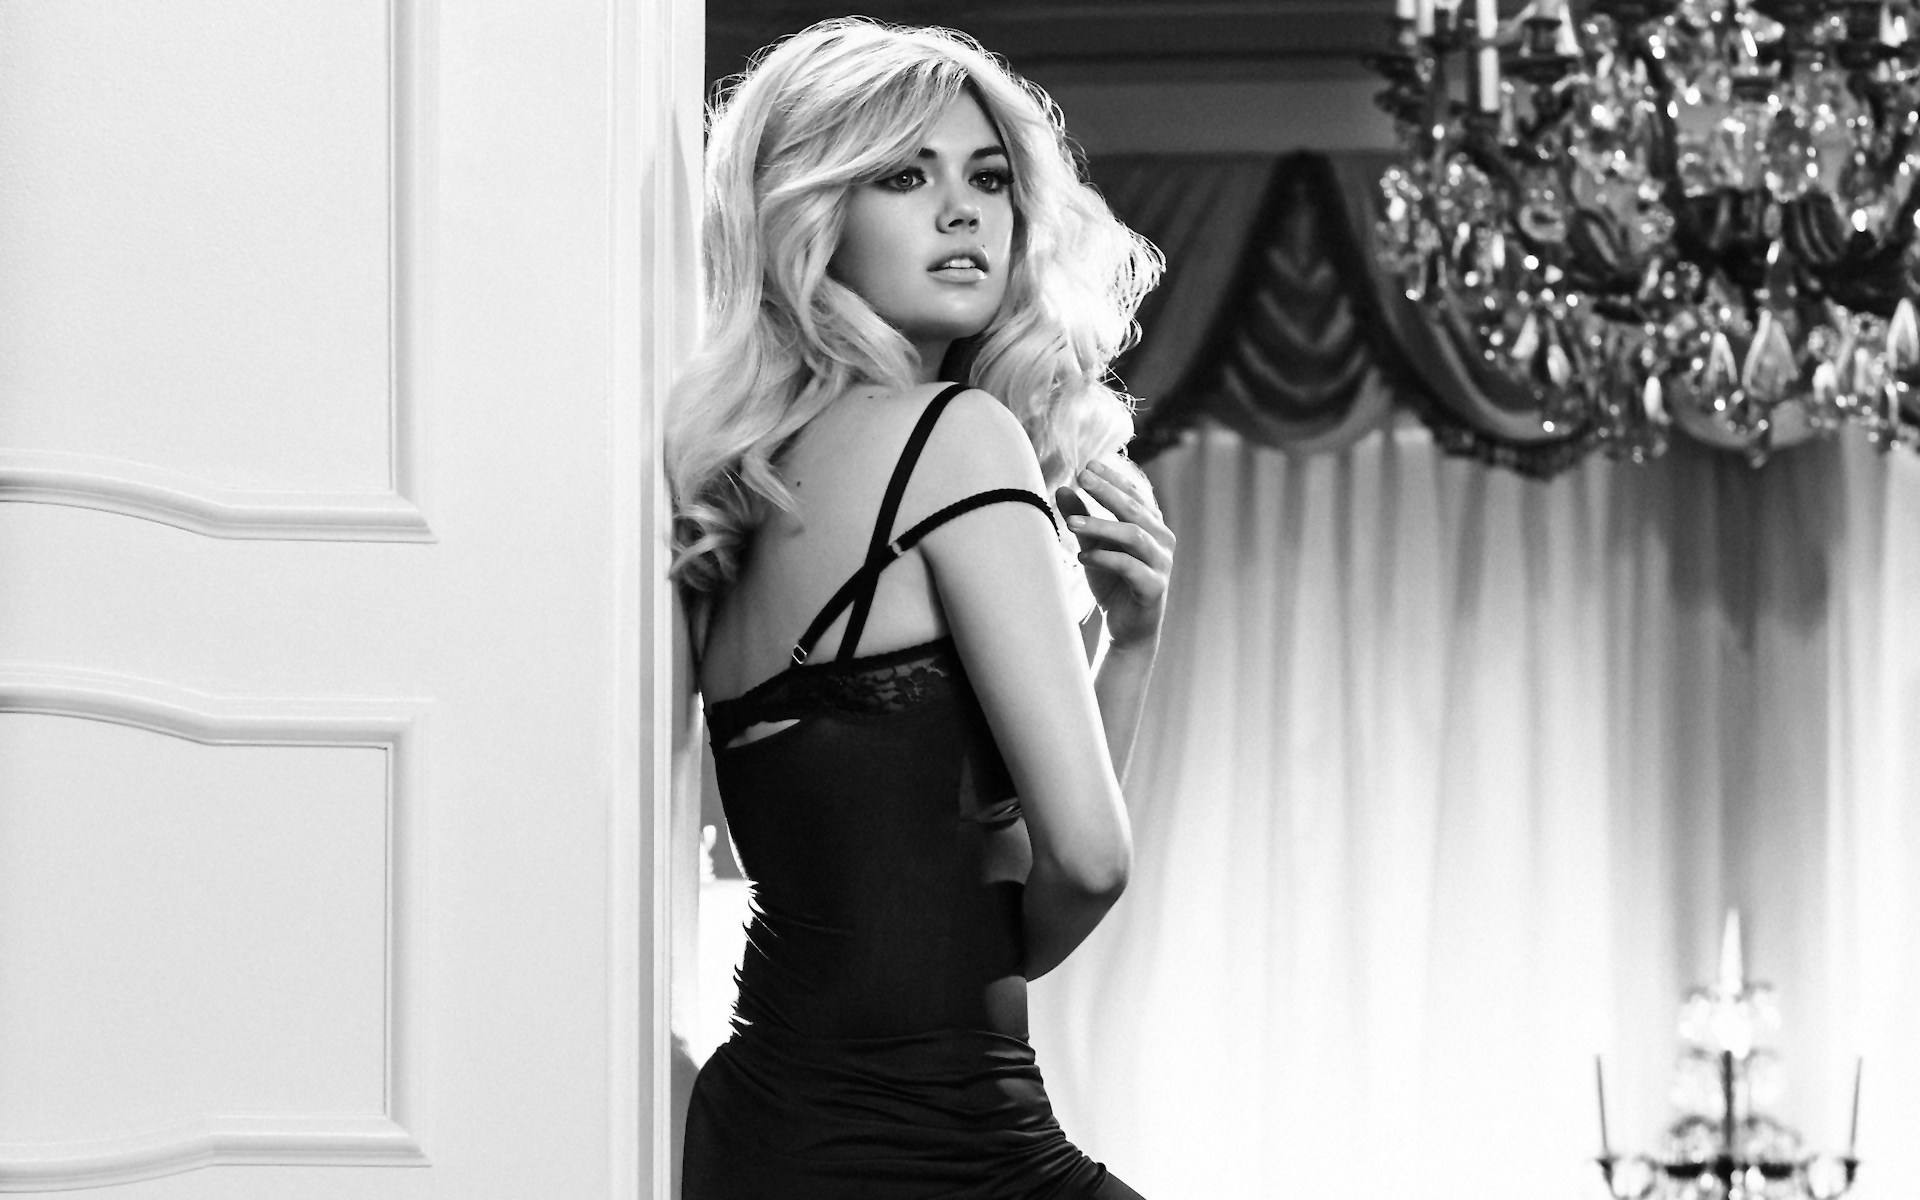 Kate upton black white